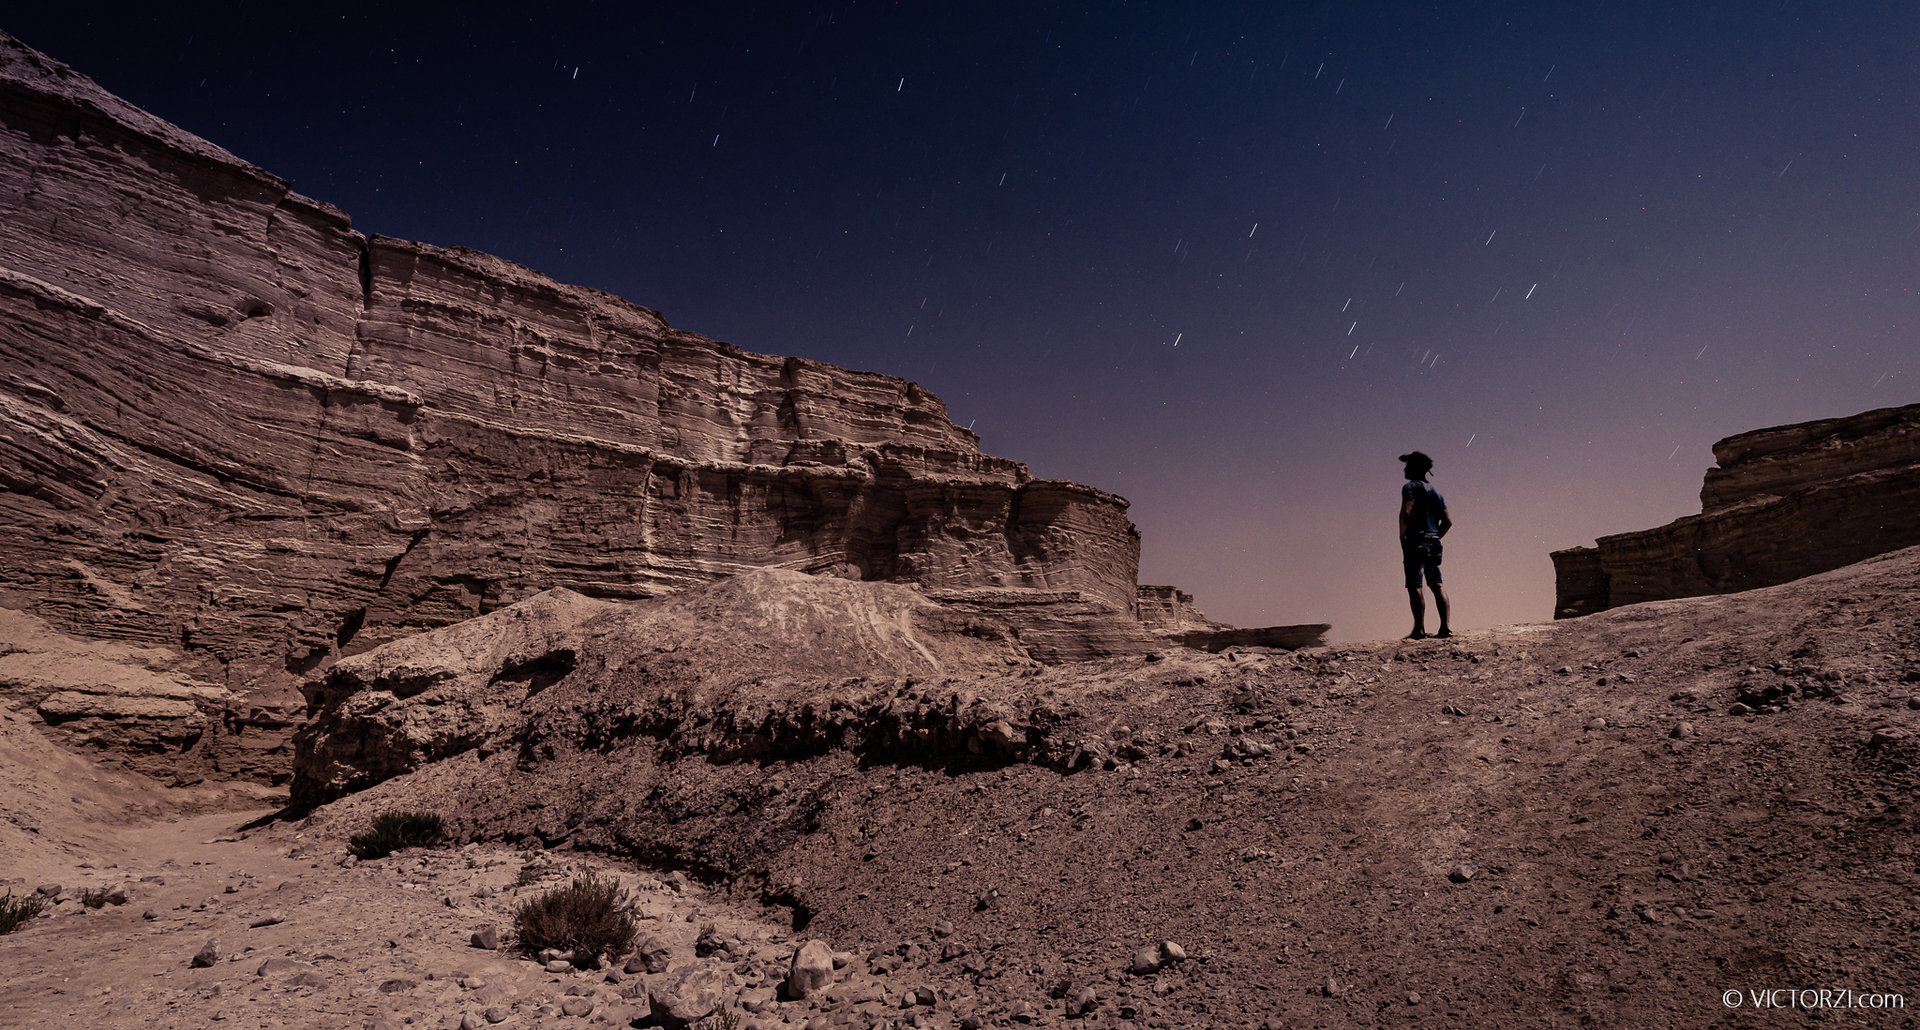 Moon Lit Landscape Photography at the Dead Sea